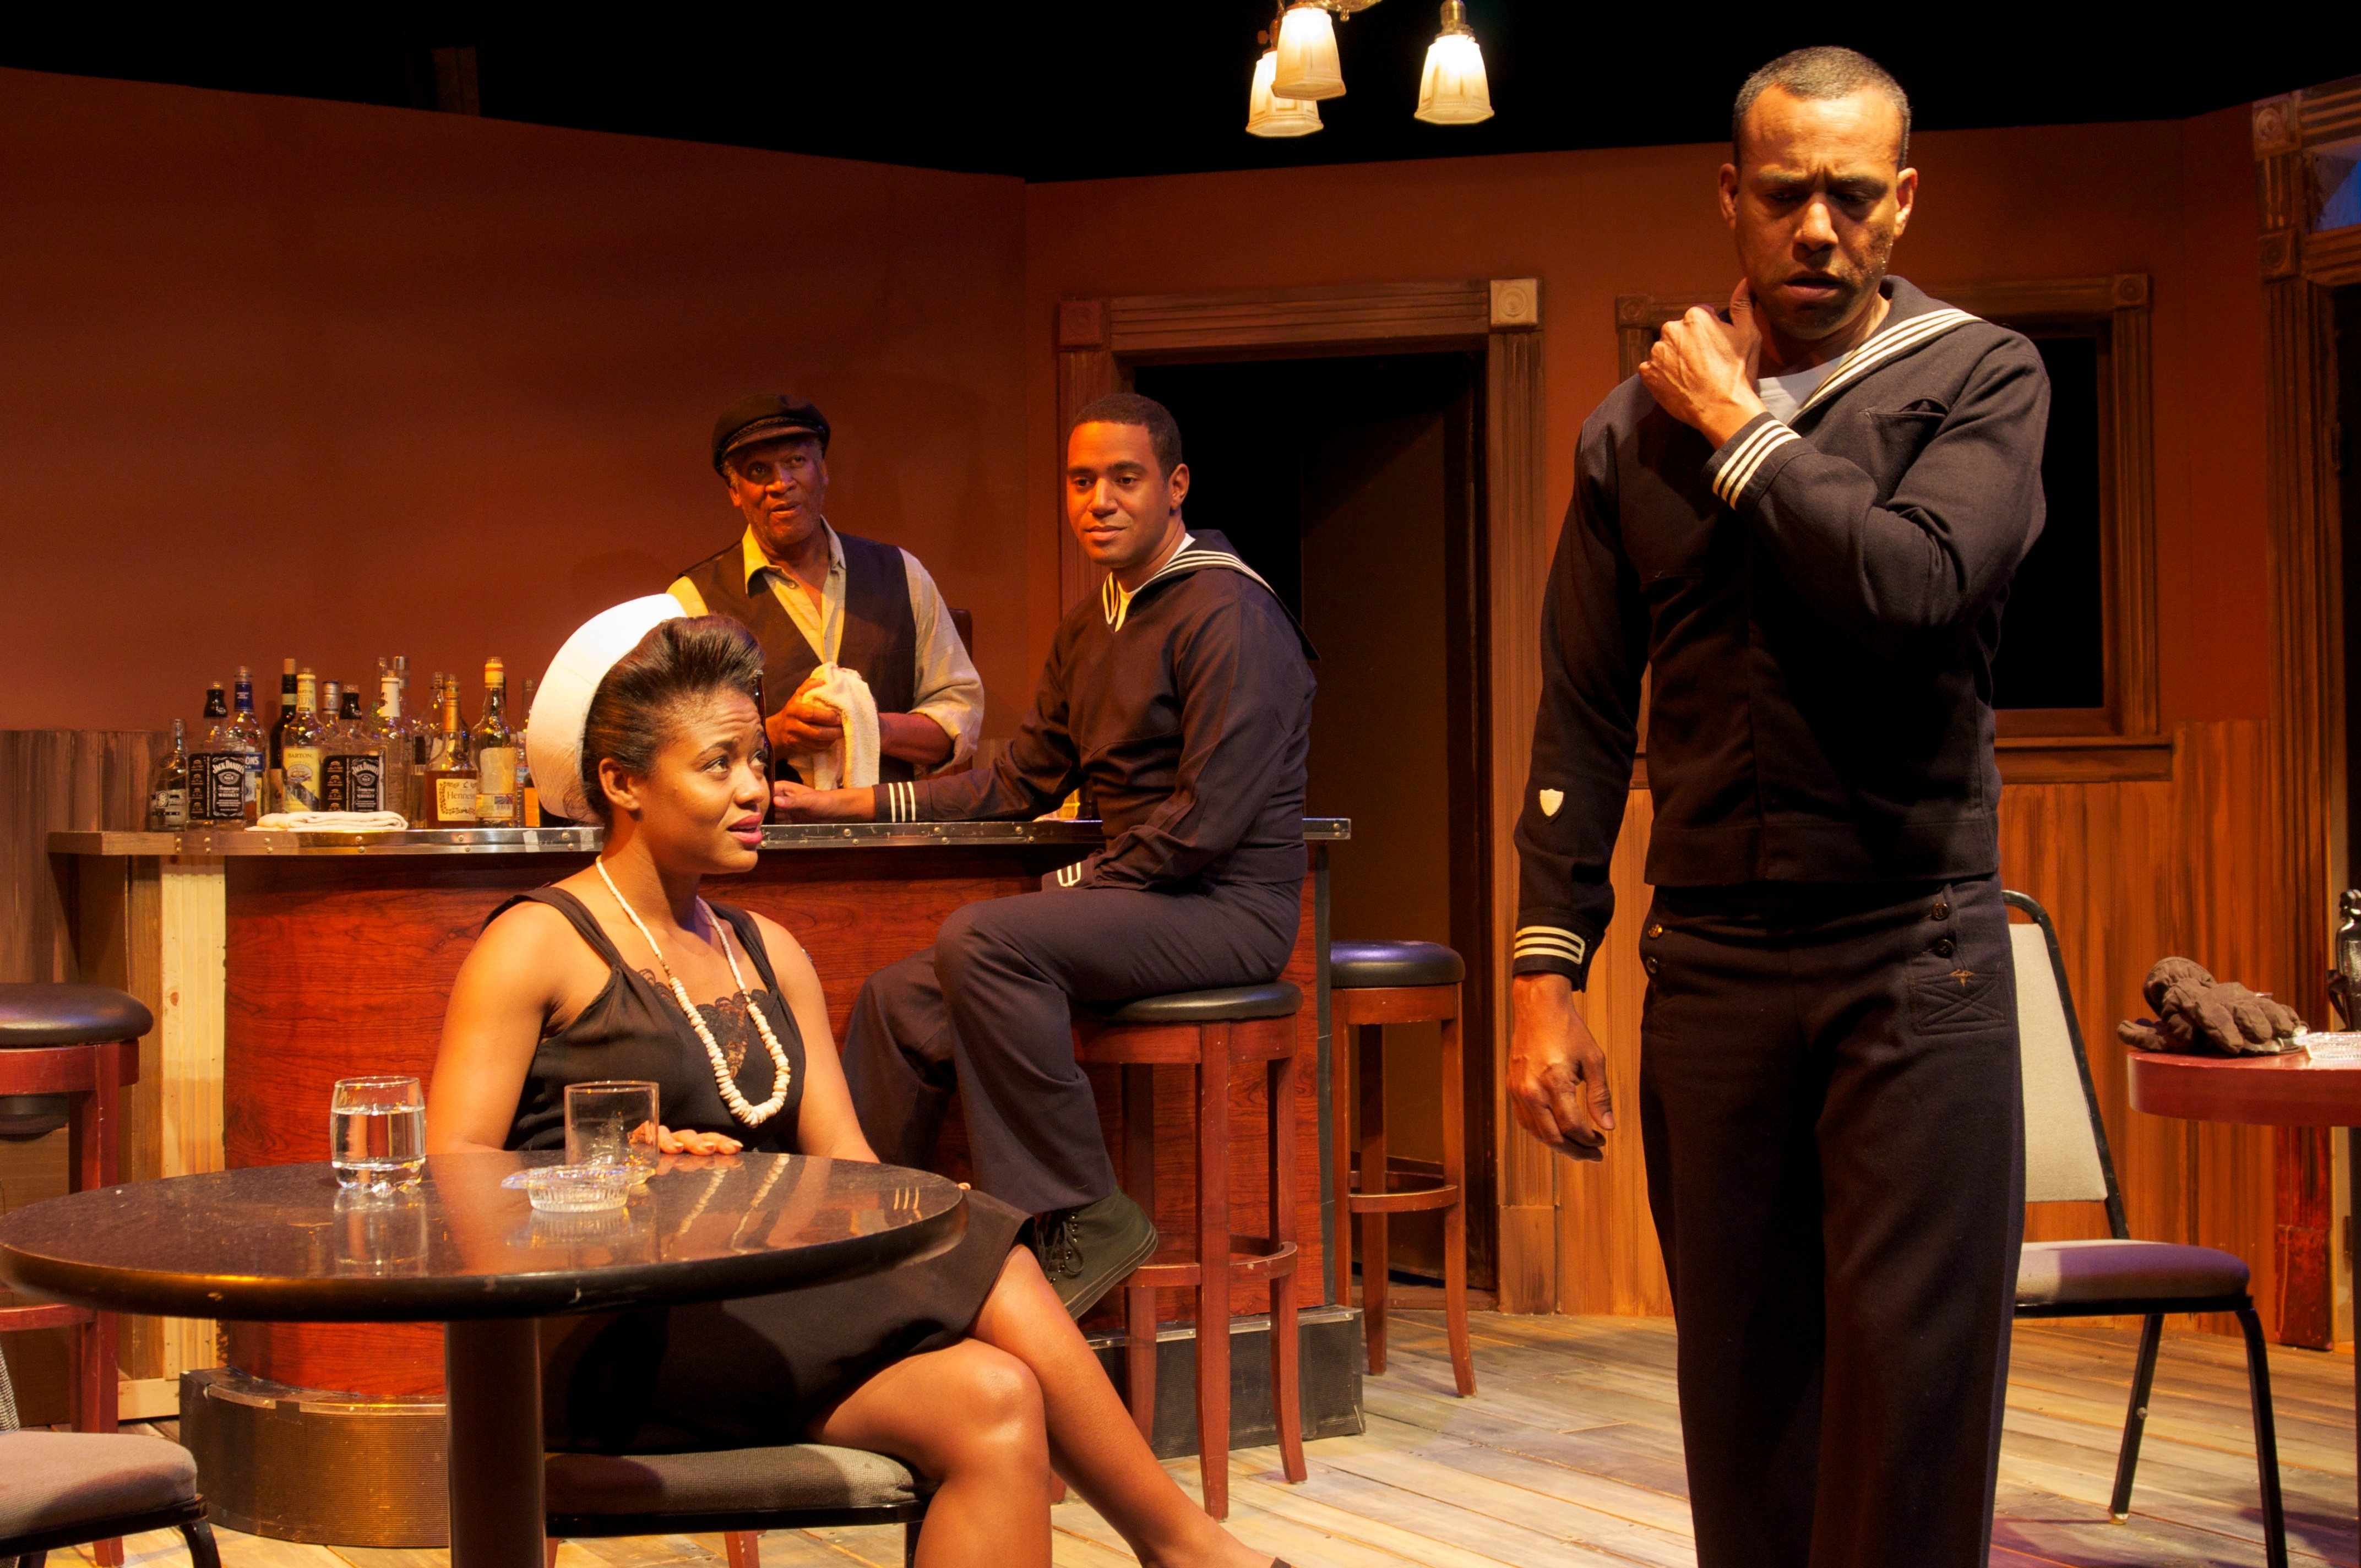 theatre critique Theater reviews our theater critics on the plays and musicals currently open in  new york city  critic's pick off broadway the singing, occasionally.